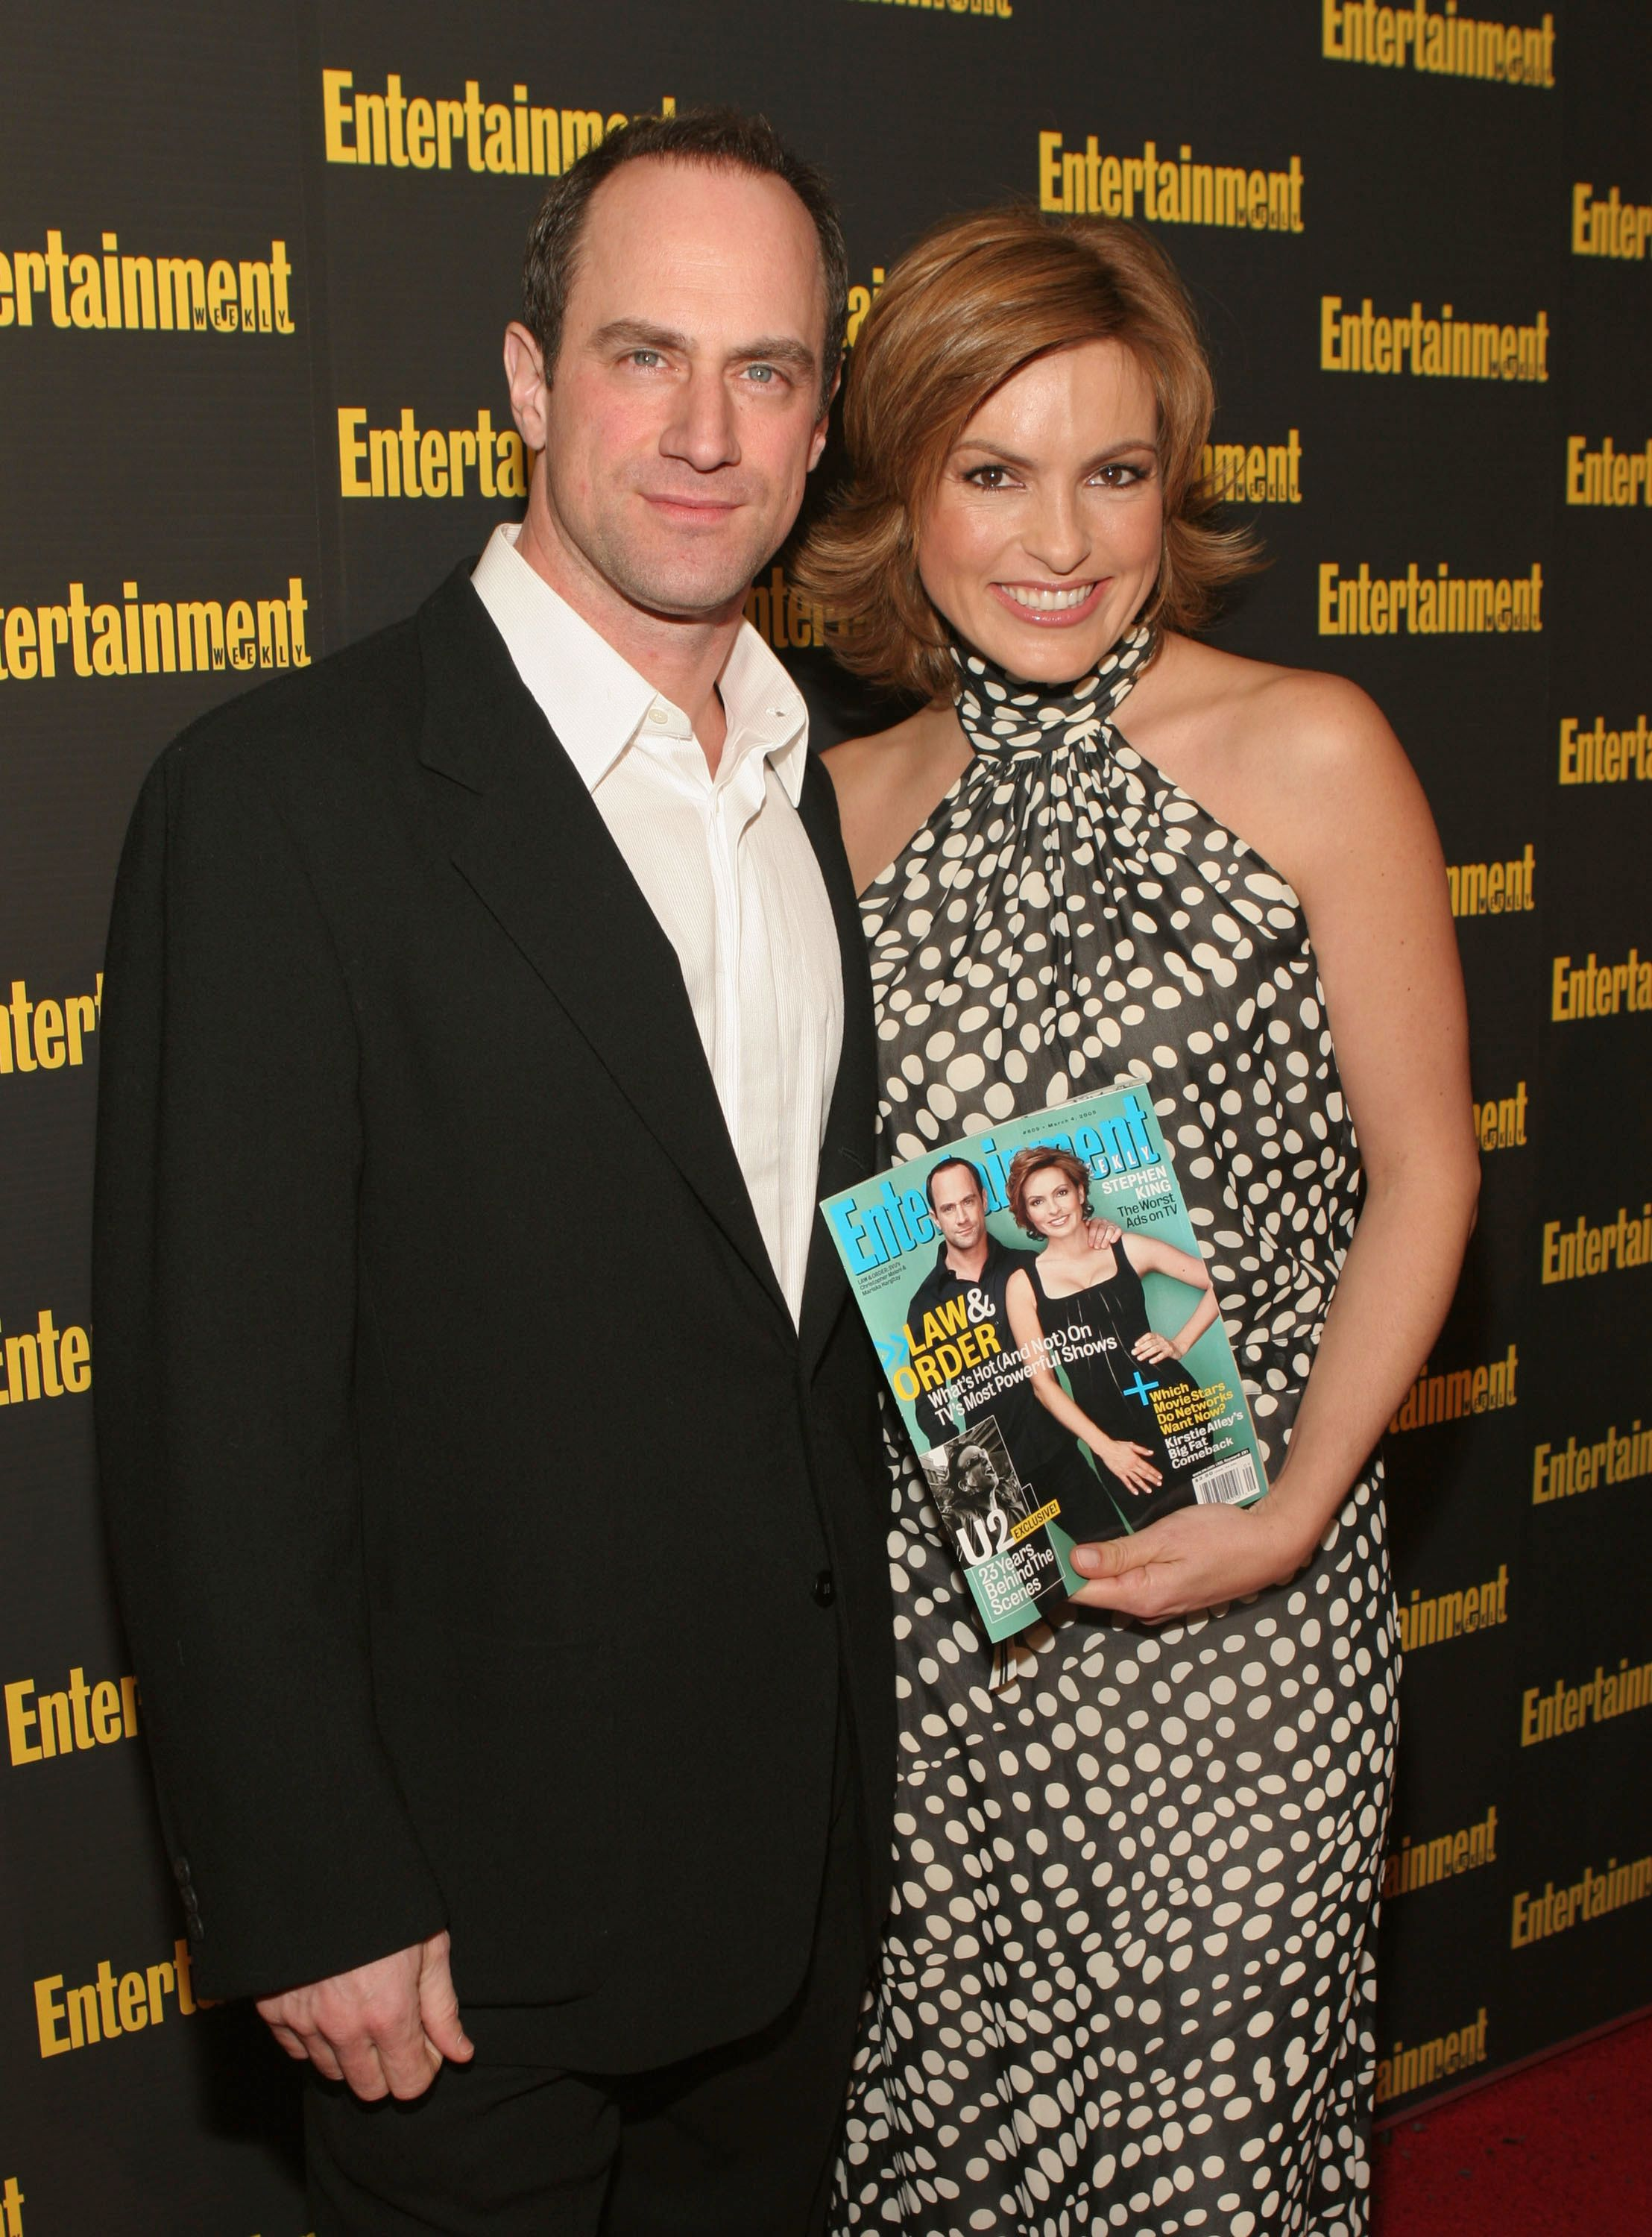 """Chris Meloni andMariska Hargitay at""""Entertainment Weekly's"""" Oscar viewing party at Elaine's on February 27, 2005, in New York City 